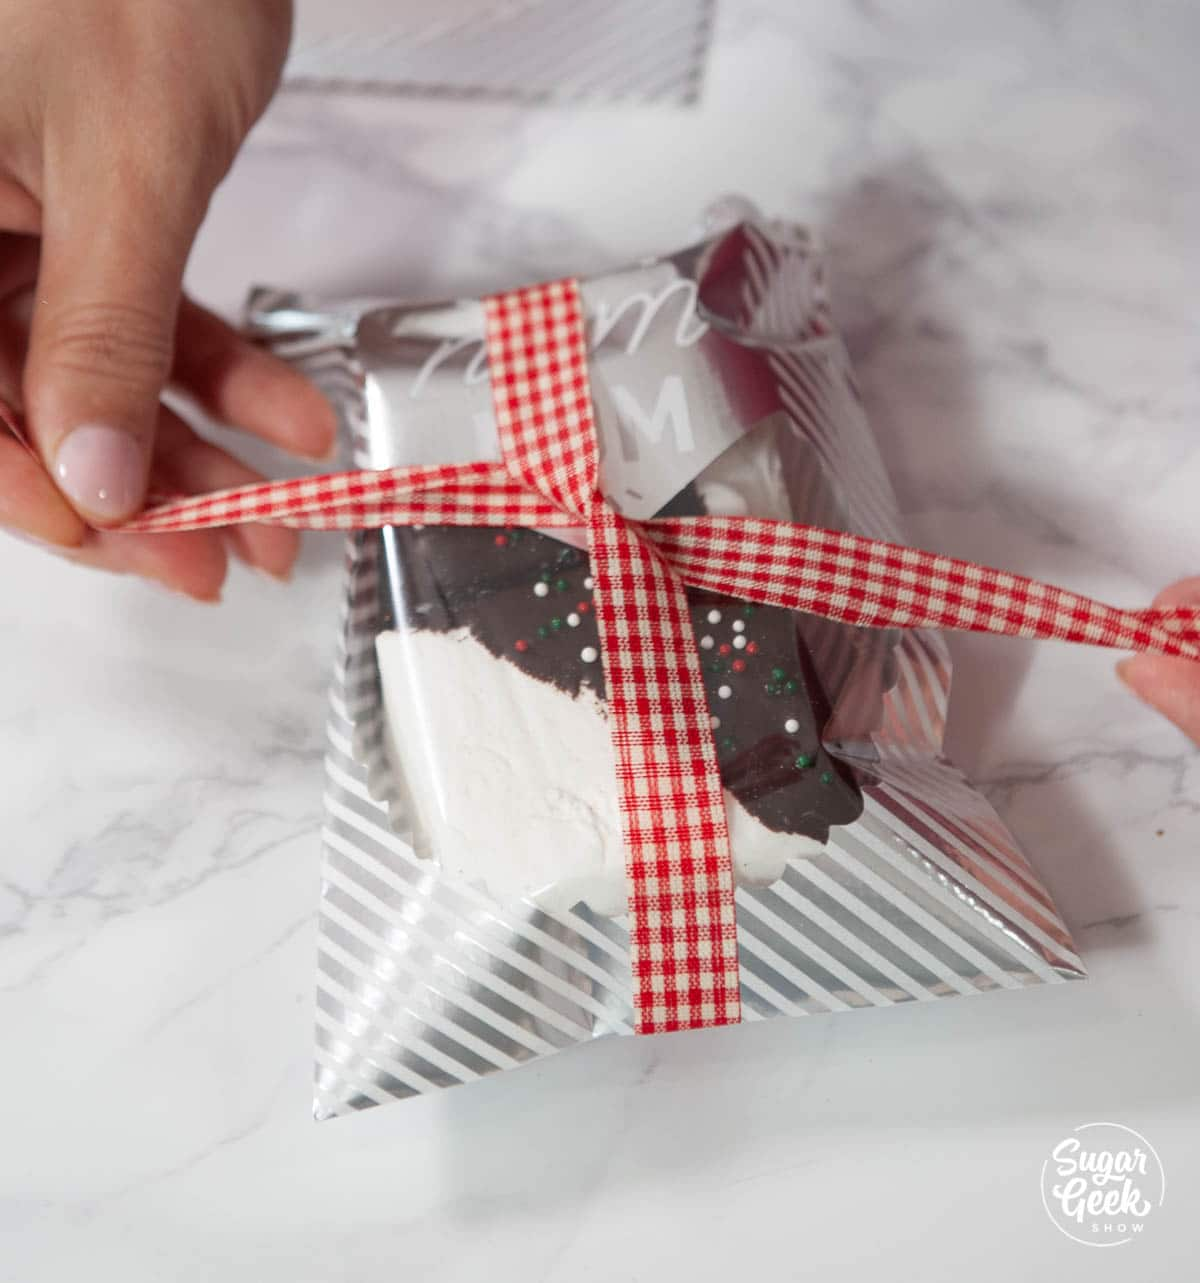 homemade marshmallows in a goodie bag with a ribbon